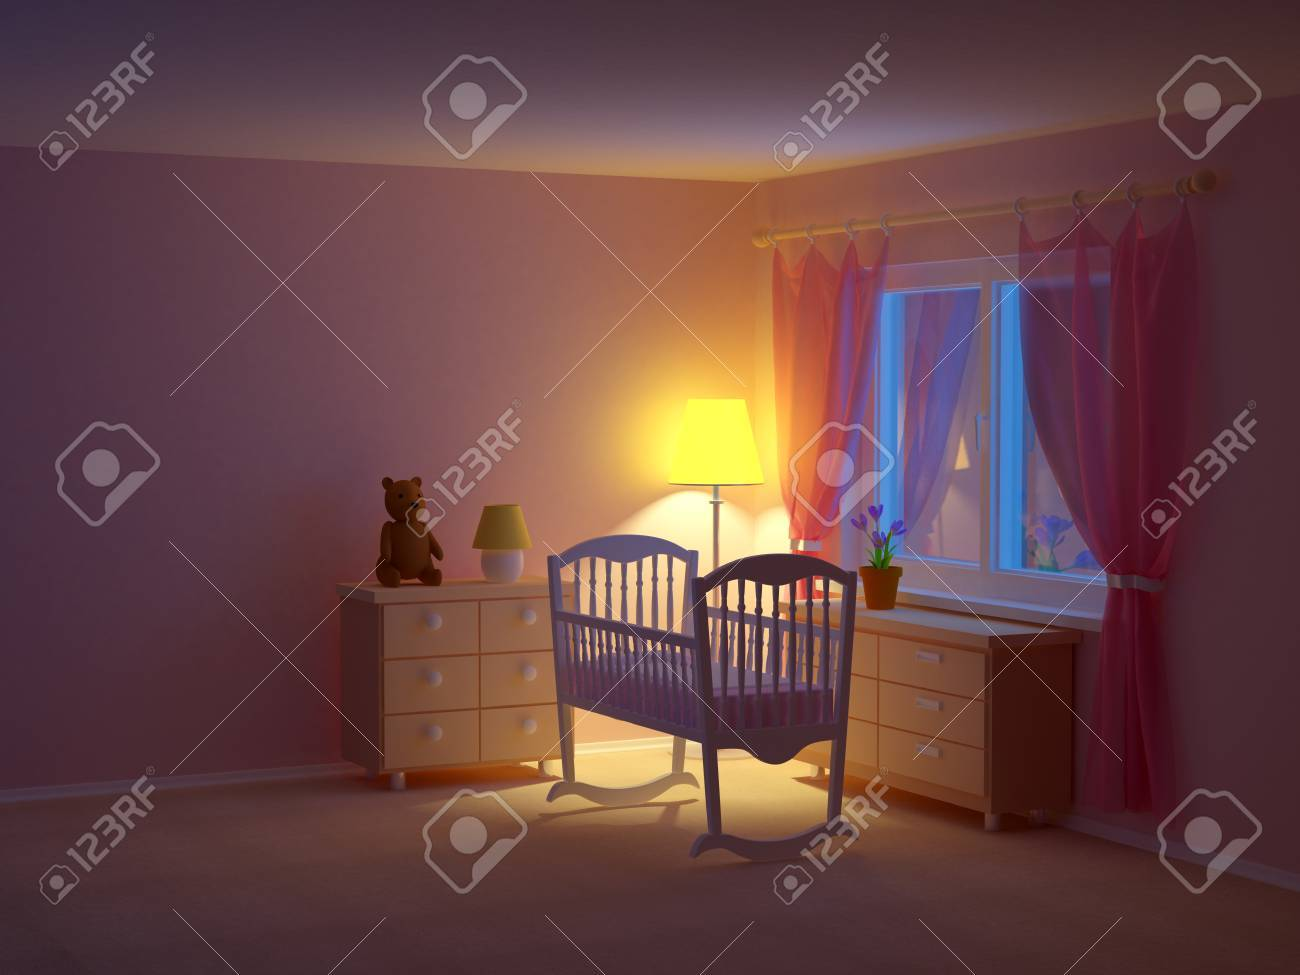 Babys Bedroom With Cradle At Night Empty Room 3d Illustration Stock